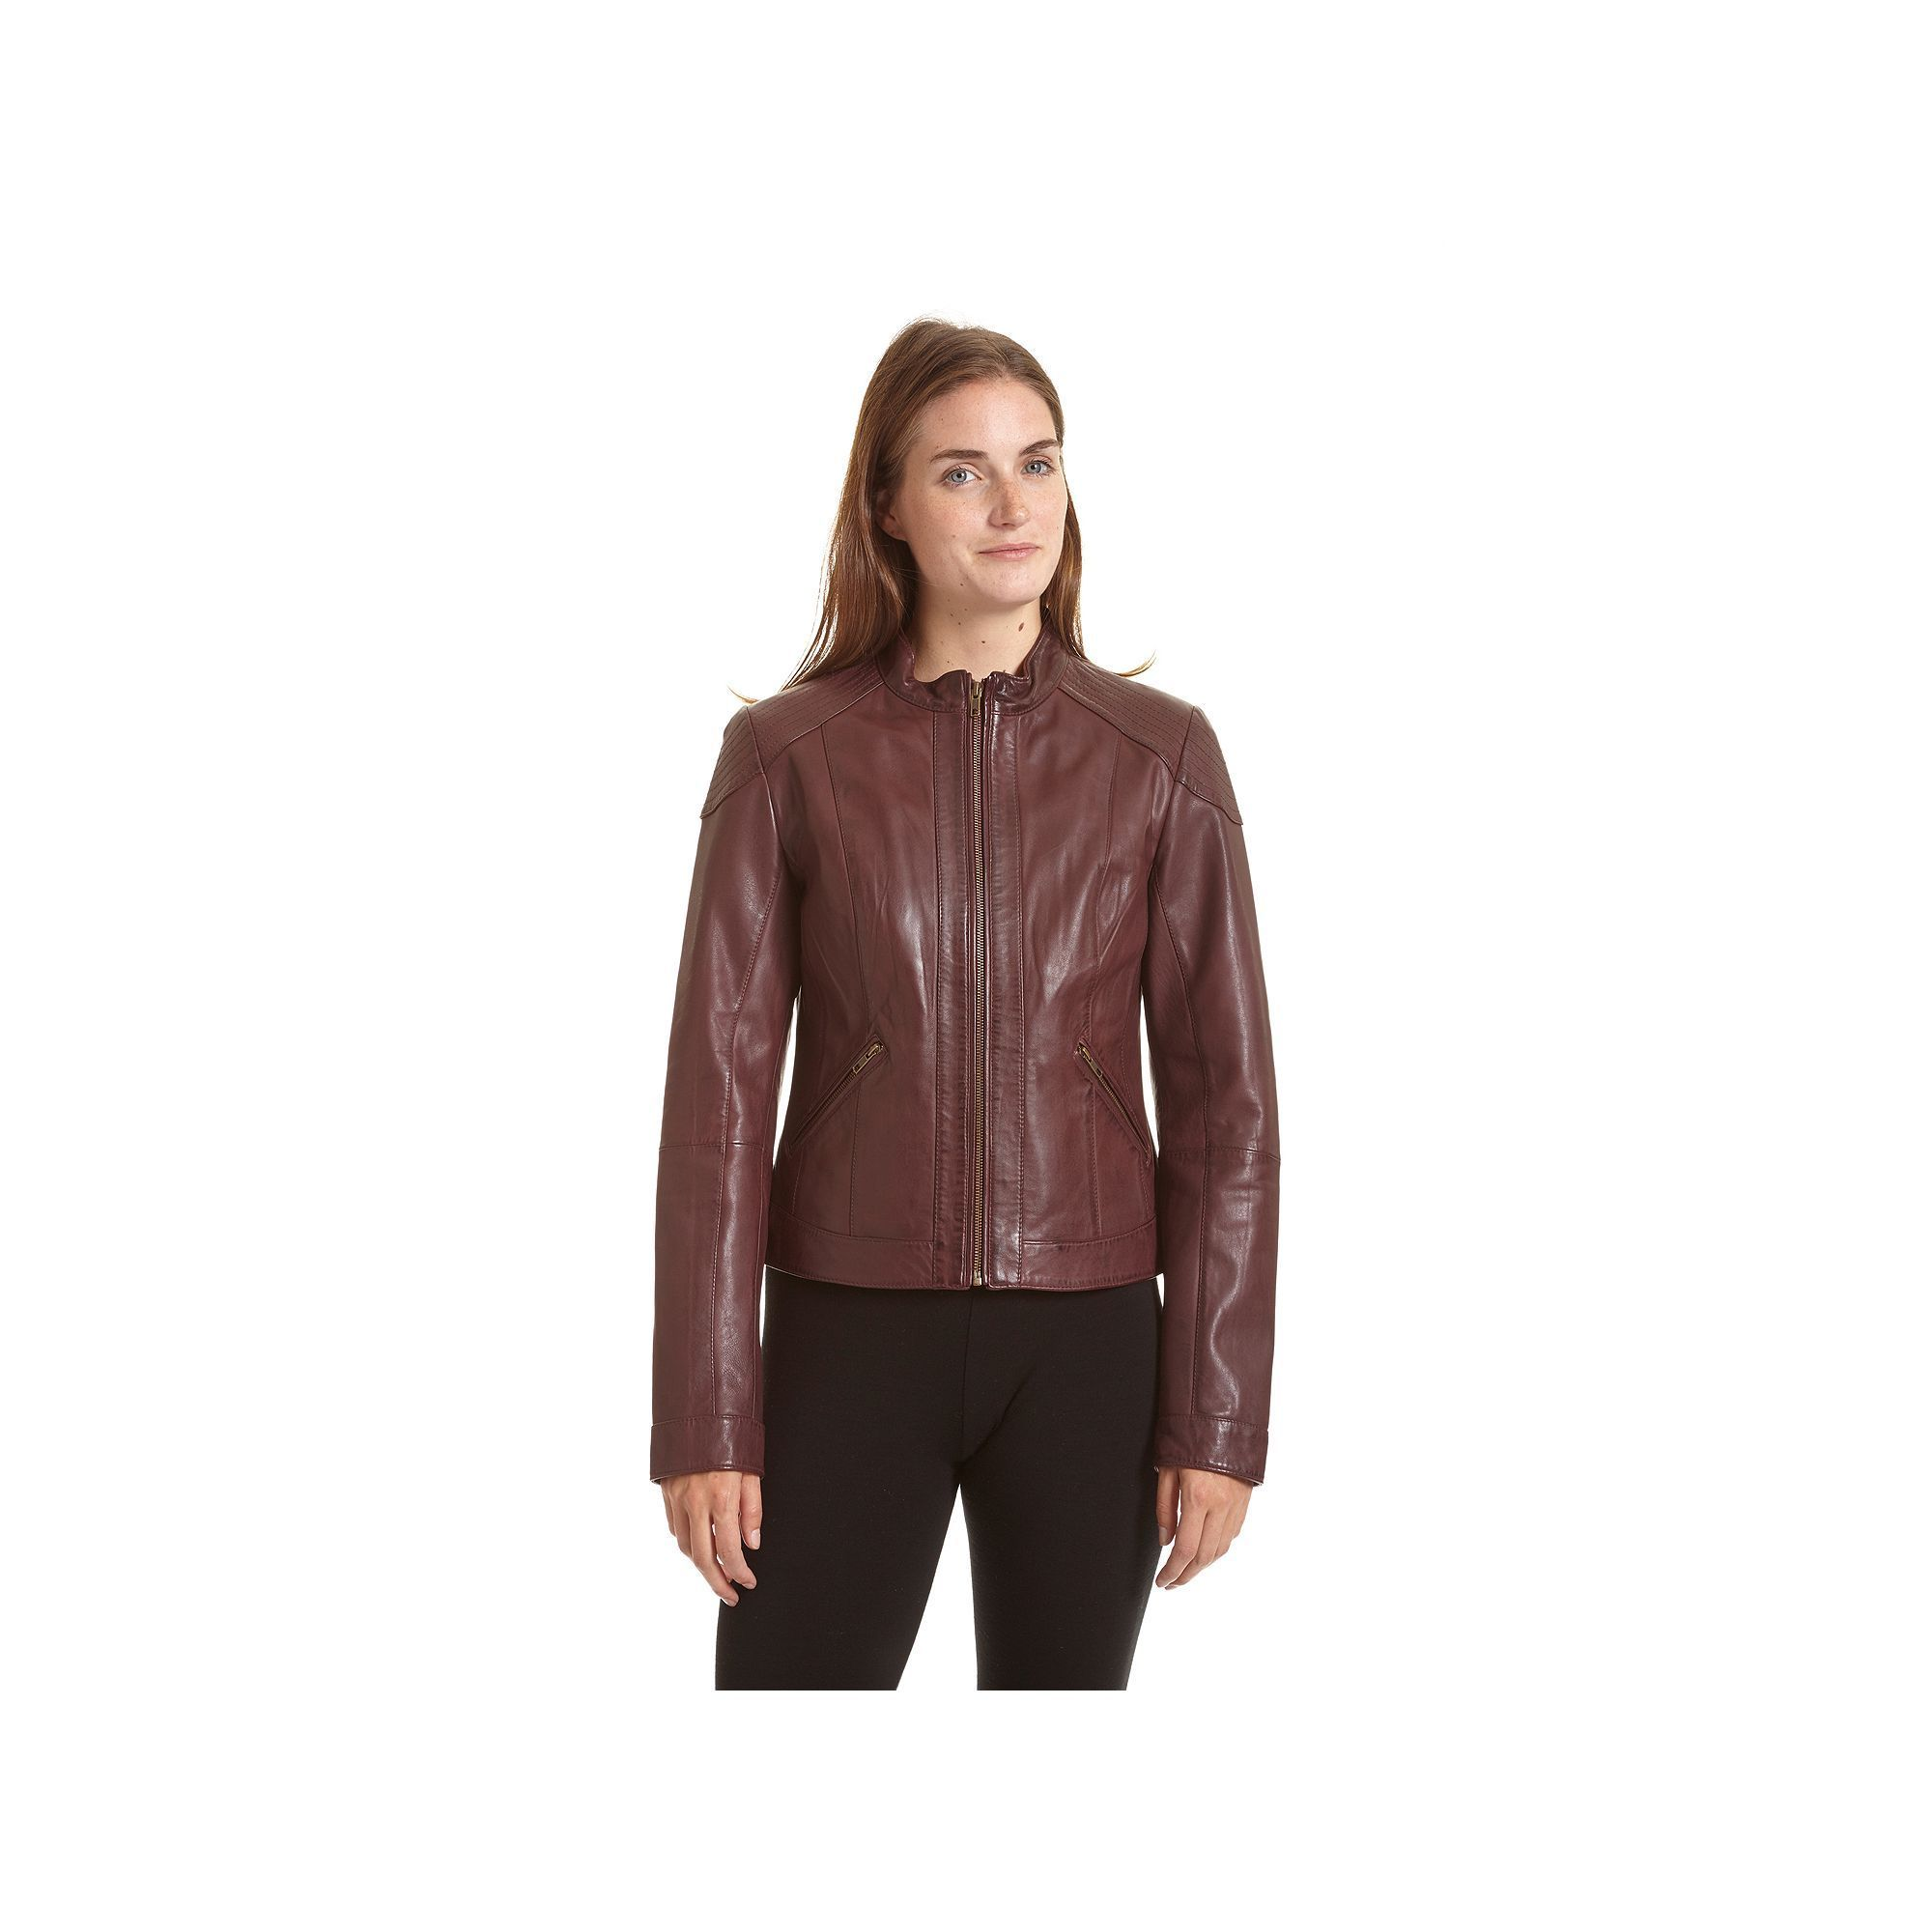 Women's Excelled Leather Motorcycle Jacket, Size: Medium, Purple Oth